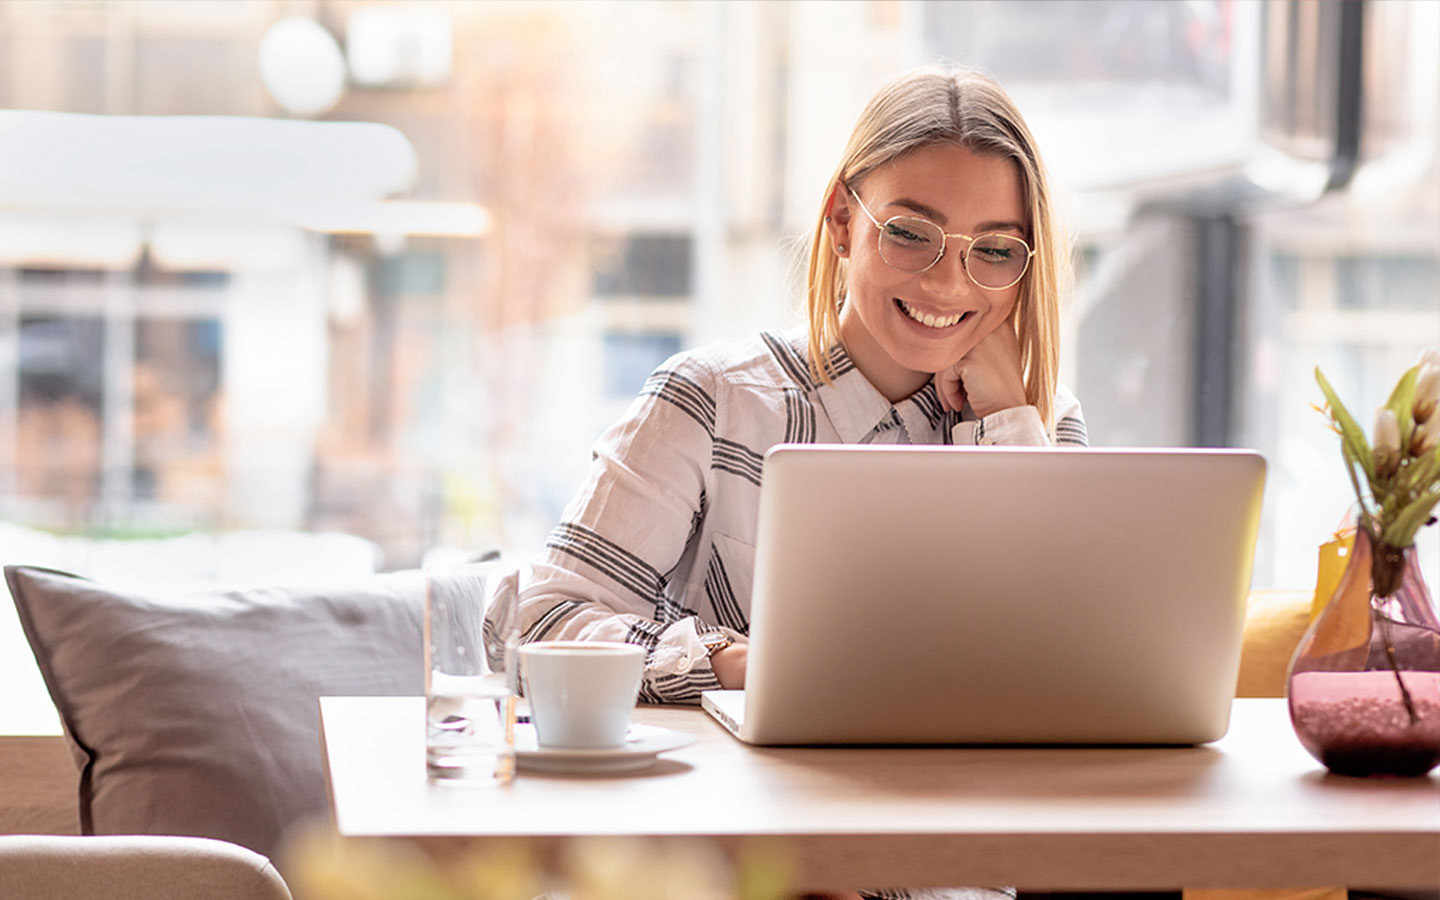 Girl teaching online on her laptop and smiling